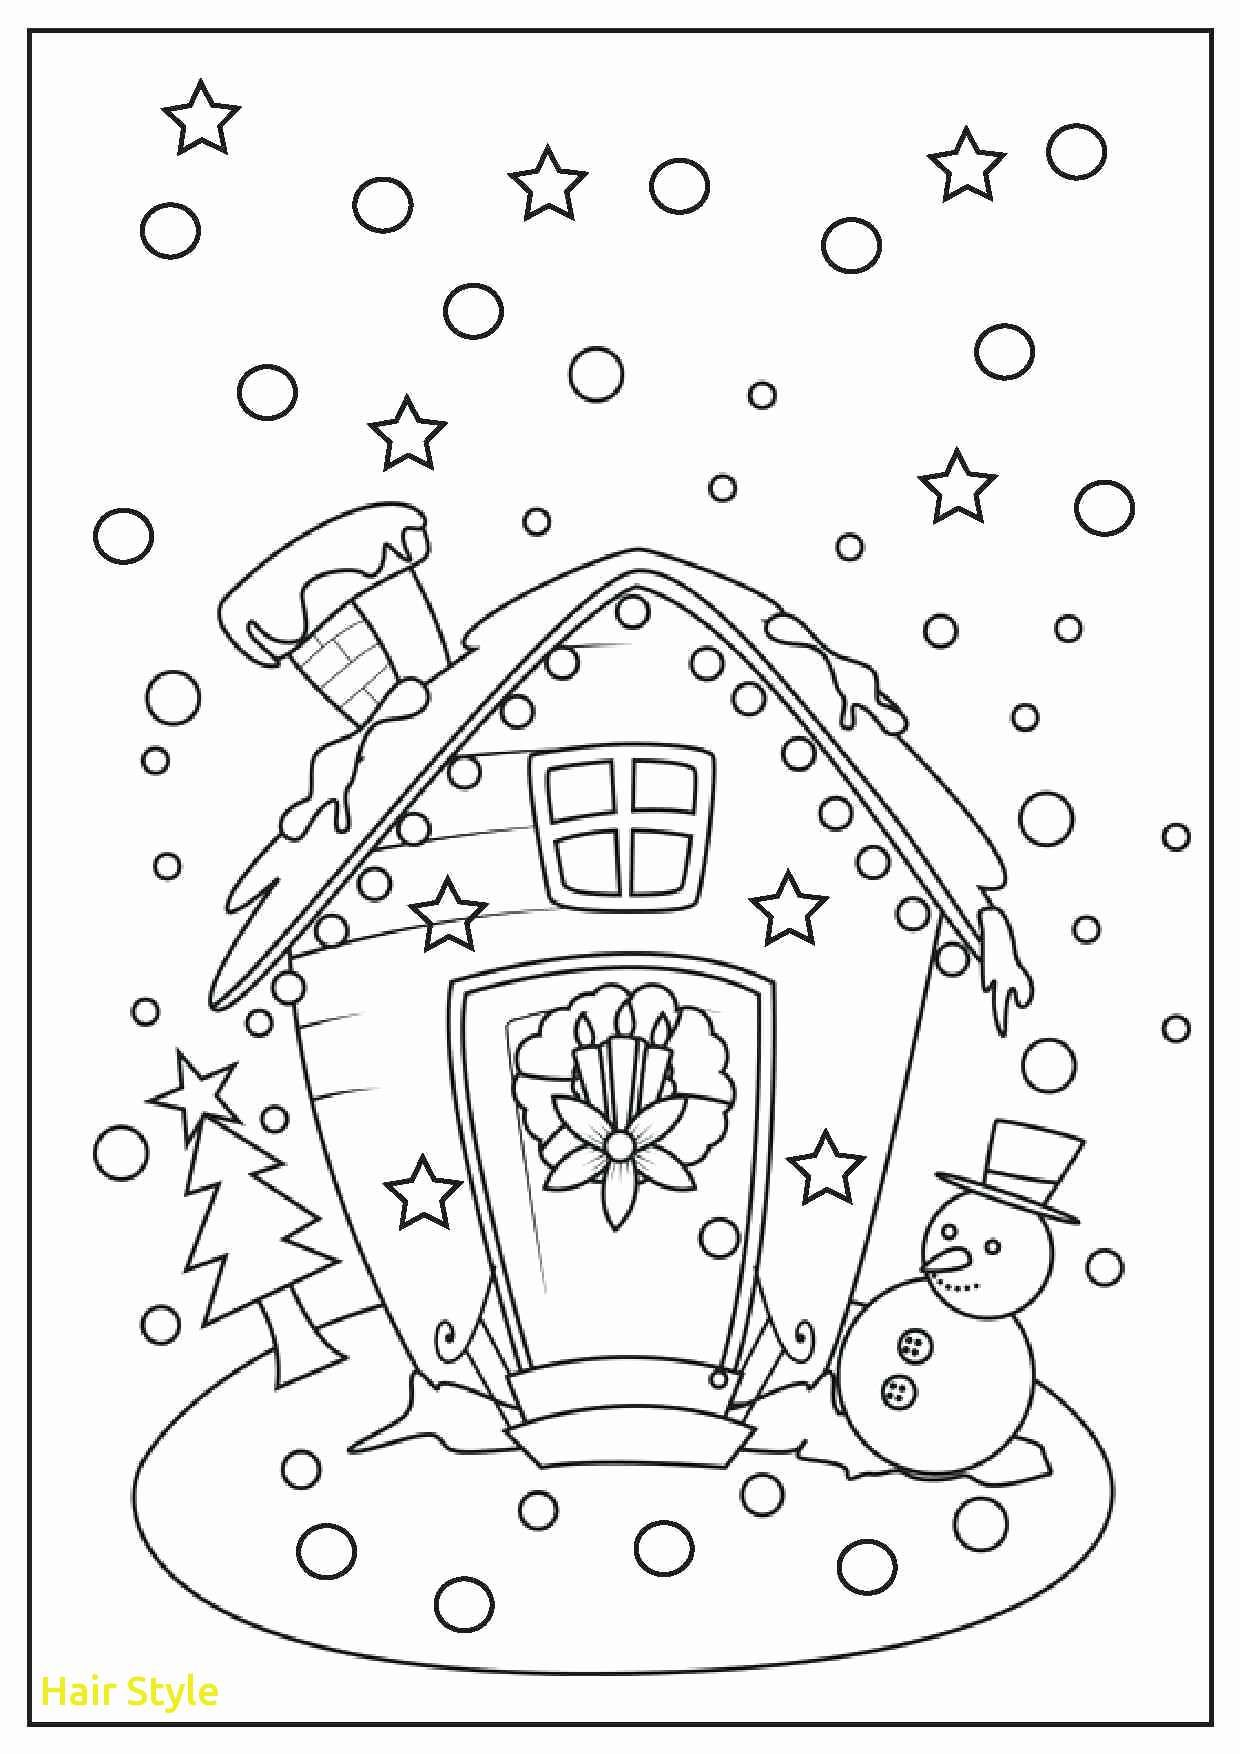 Best Of Sallow Farbe Aludt Coloring Book Pinterest Christmas